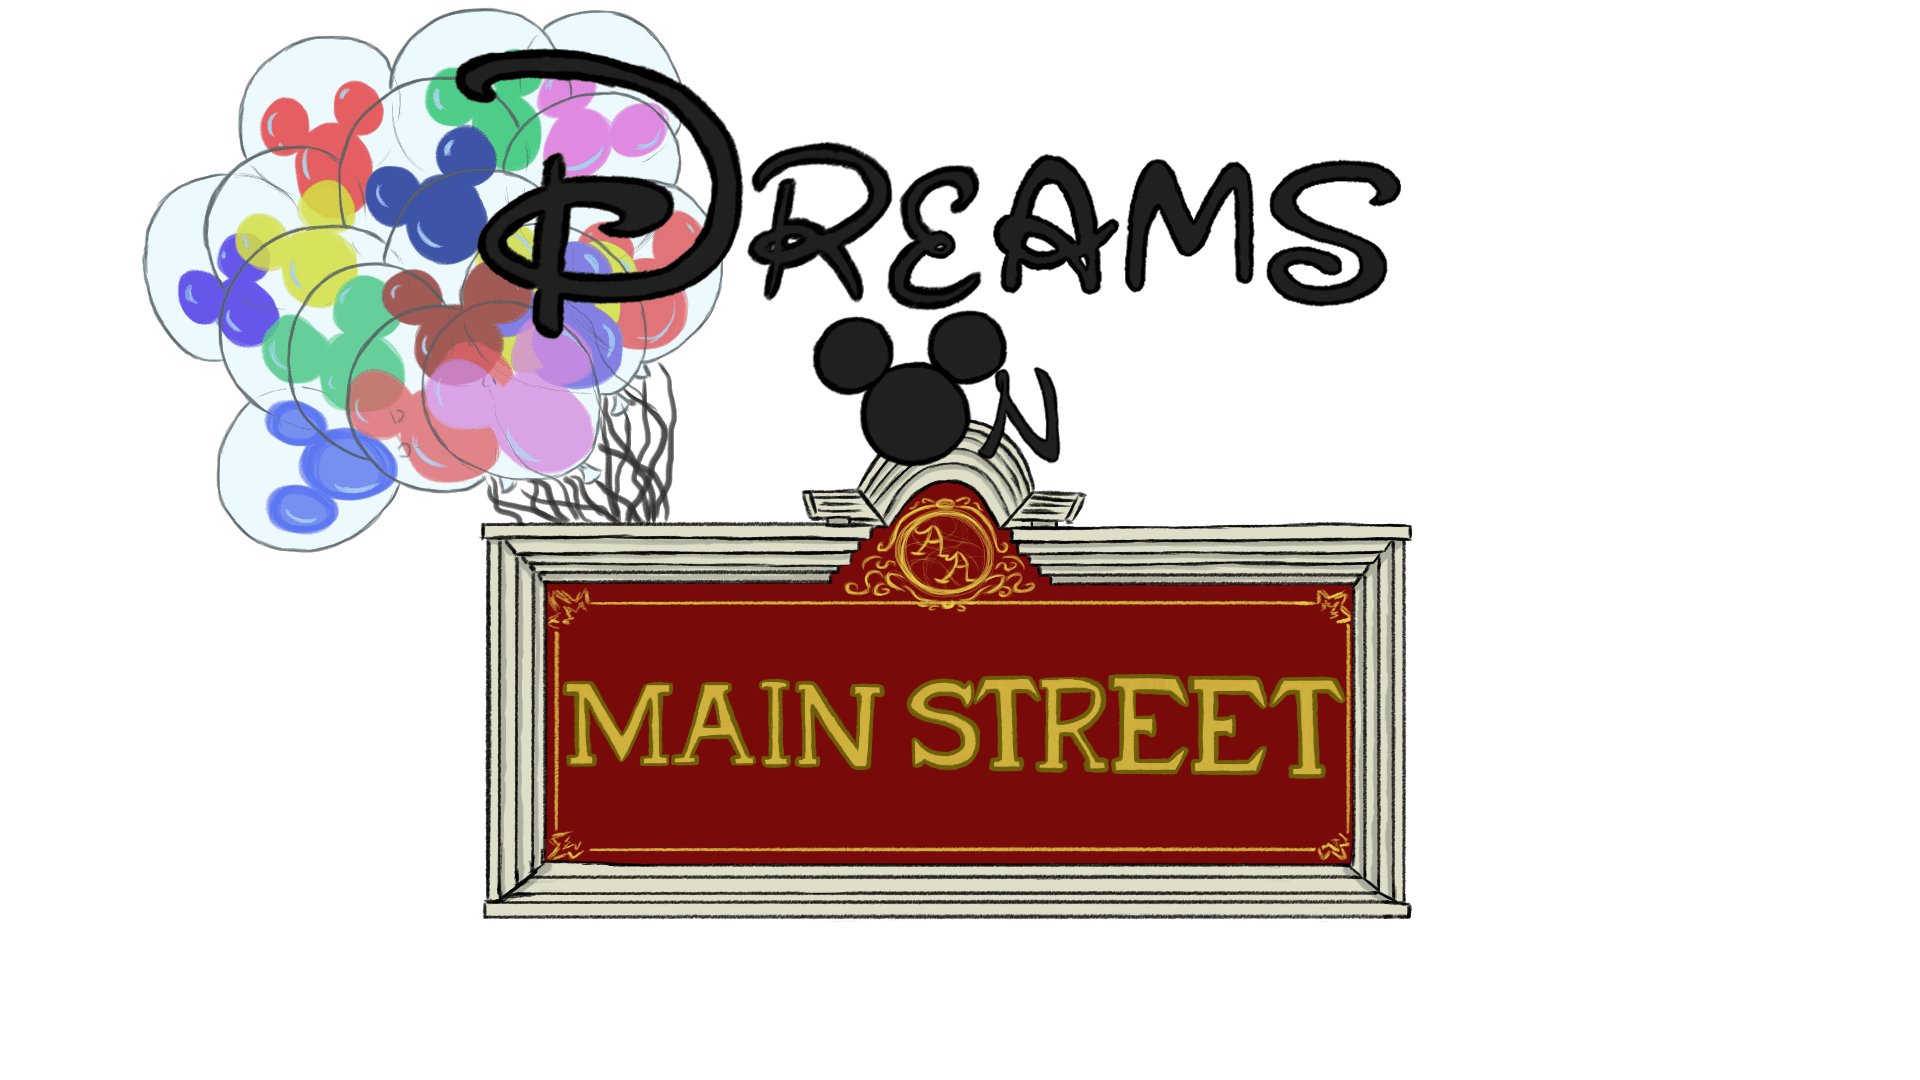 Disney parks blog halloween clipart graphic black and white stock Dreams on Main Street graphic black and white stock